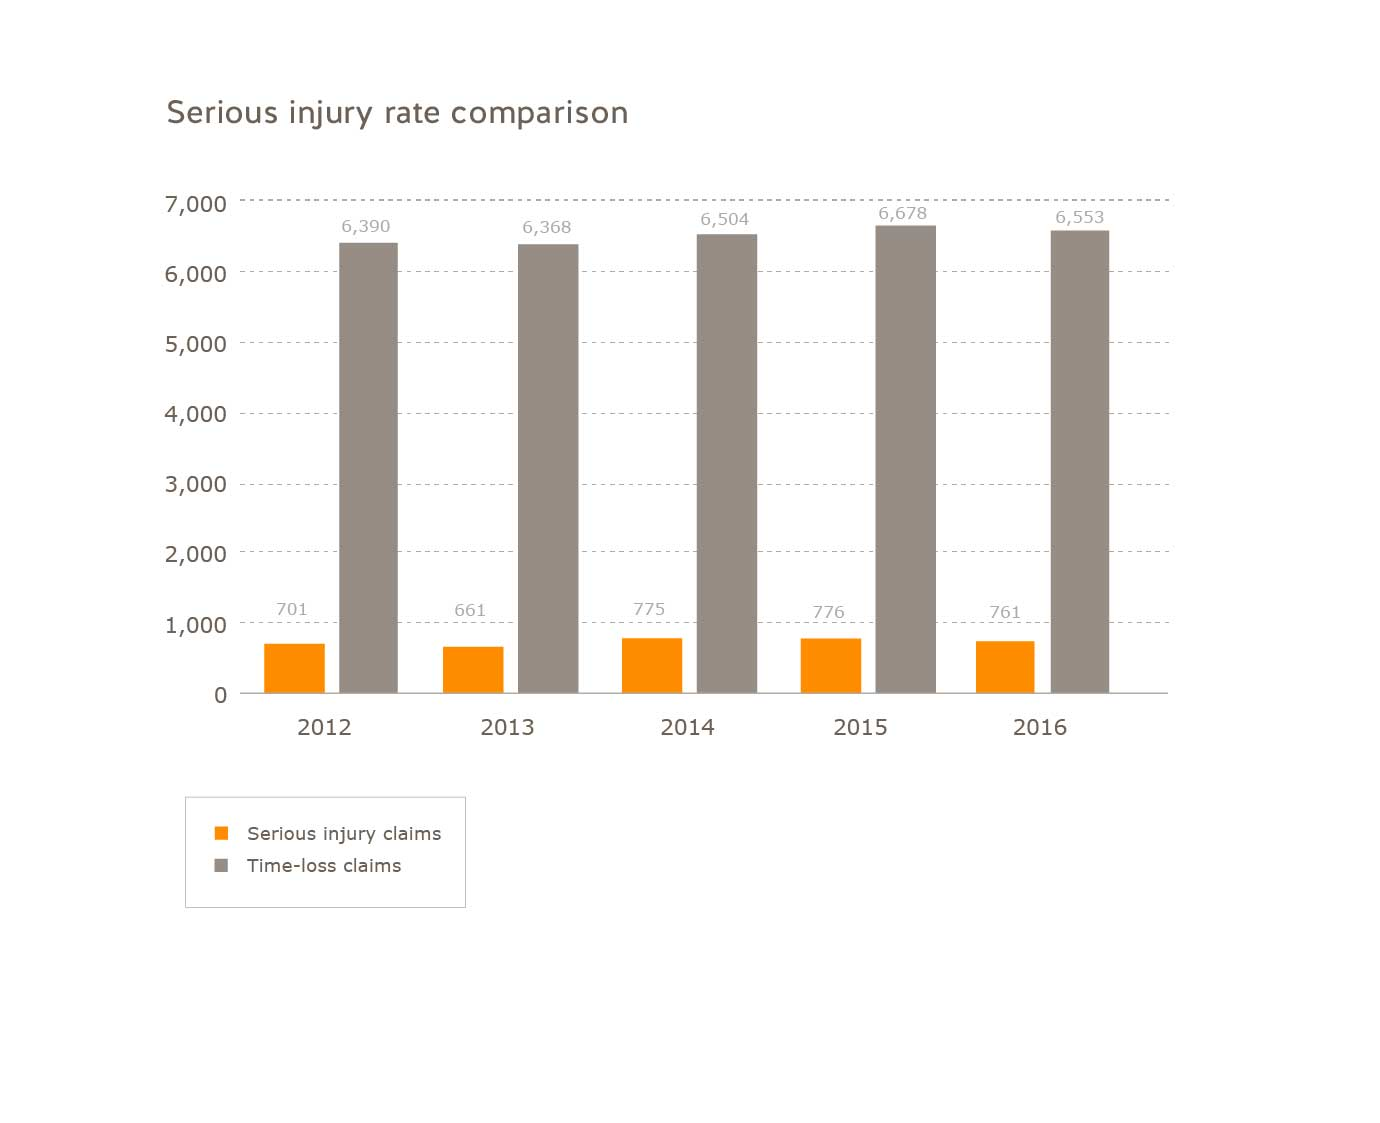 Young worker serious injury rate comparison for 2012 to 2016. Serious injury claims: 2012=701, 2013=661; 2014=775, 2015=776, 2016=761. Time-loss claims: 2012=6390; 2013=6368; 2014=6504; 2015=6678, 2016=6553